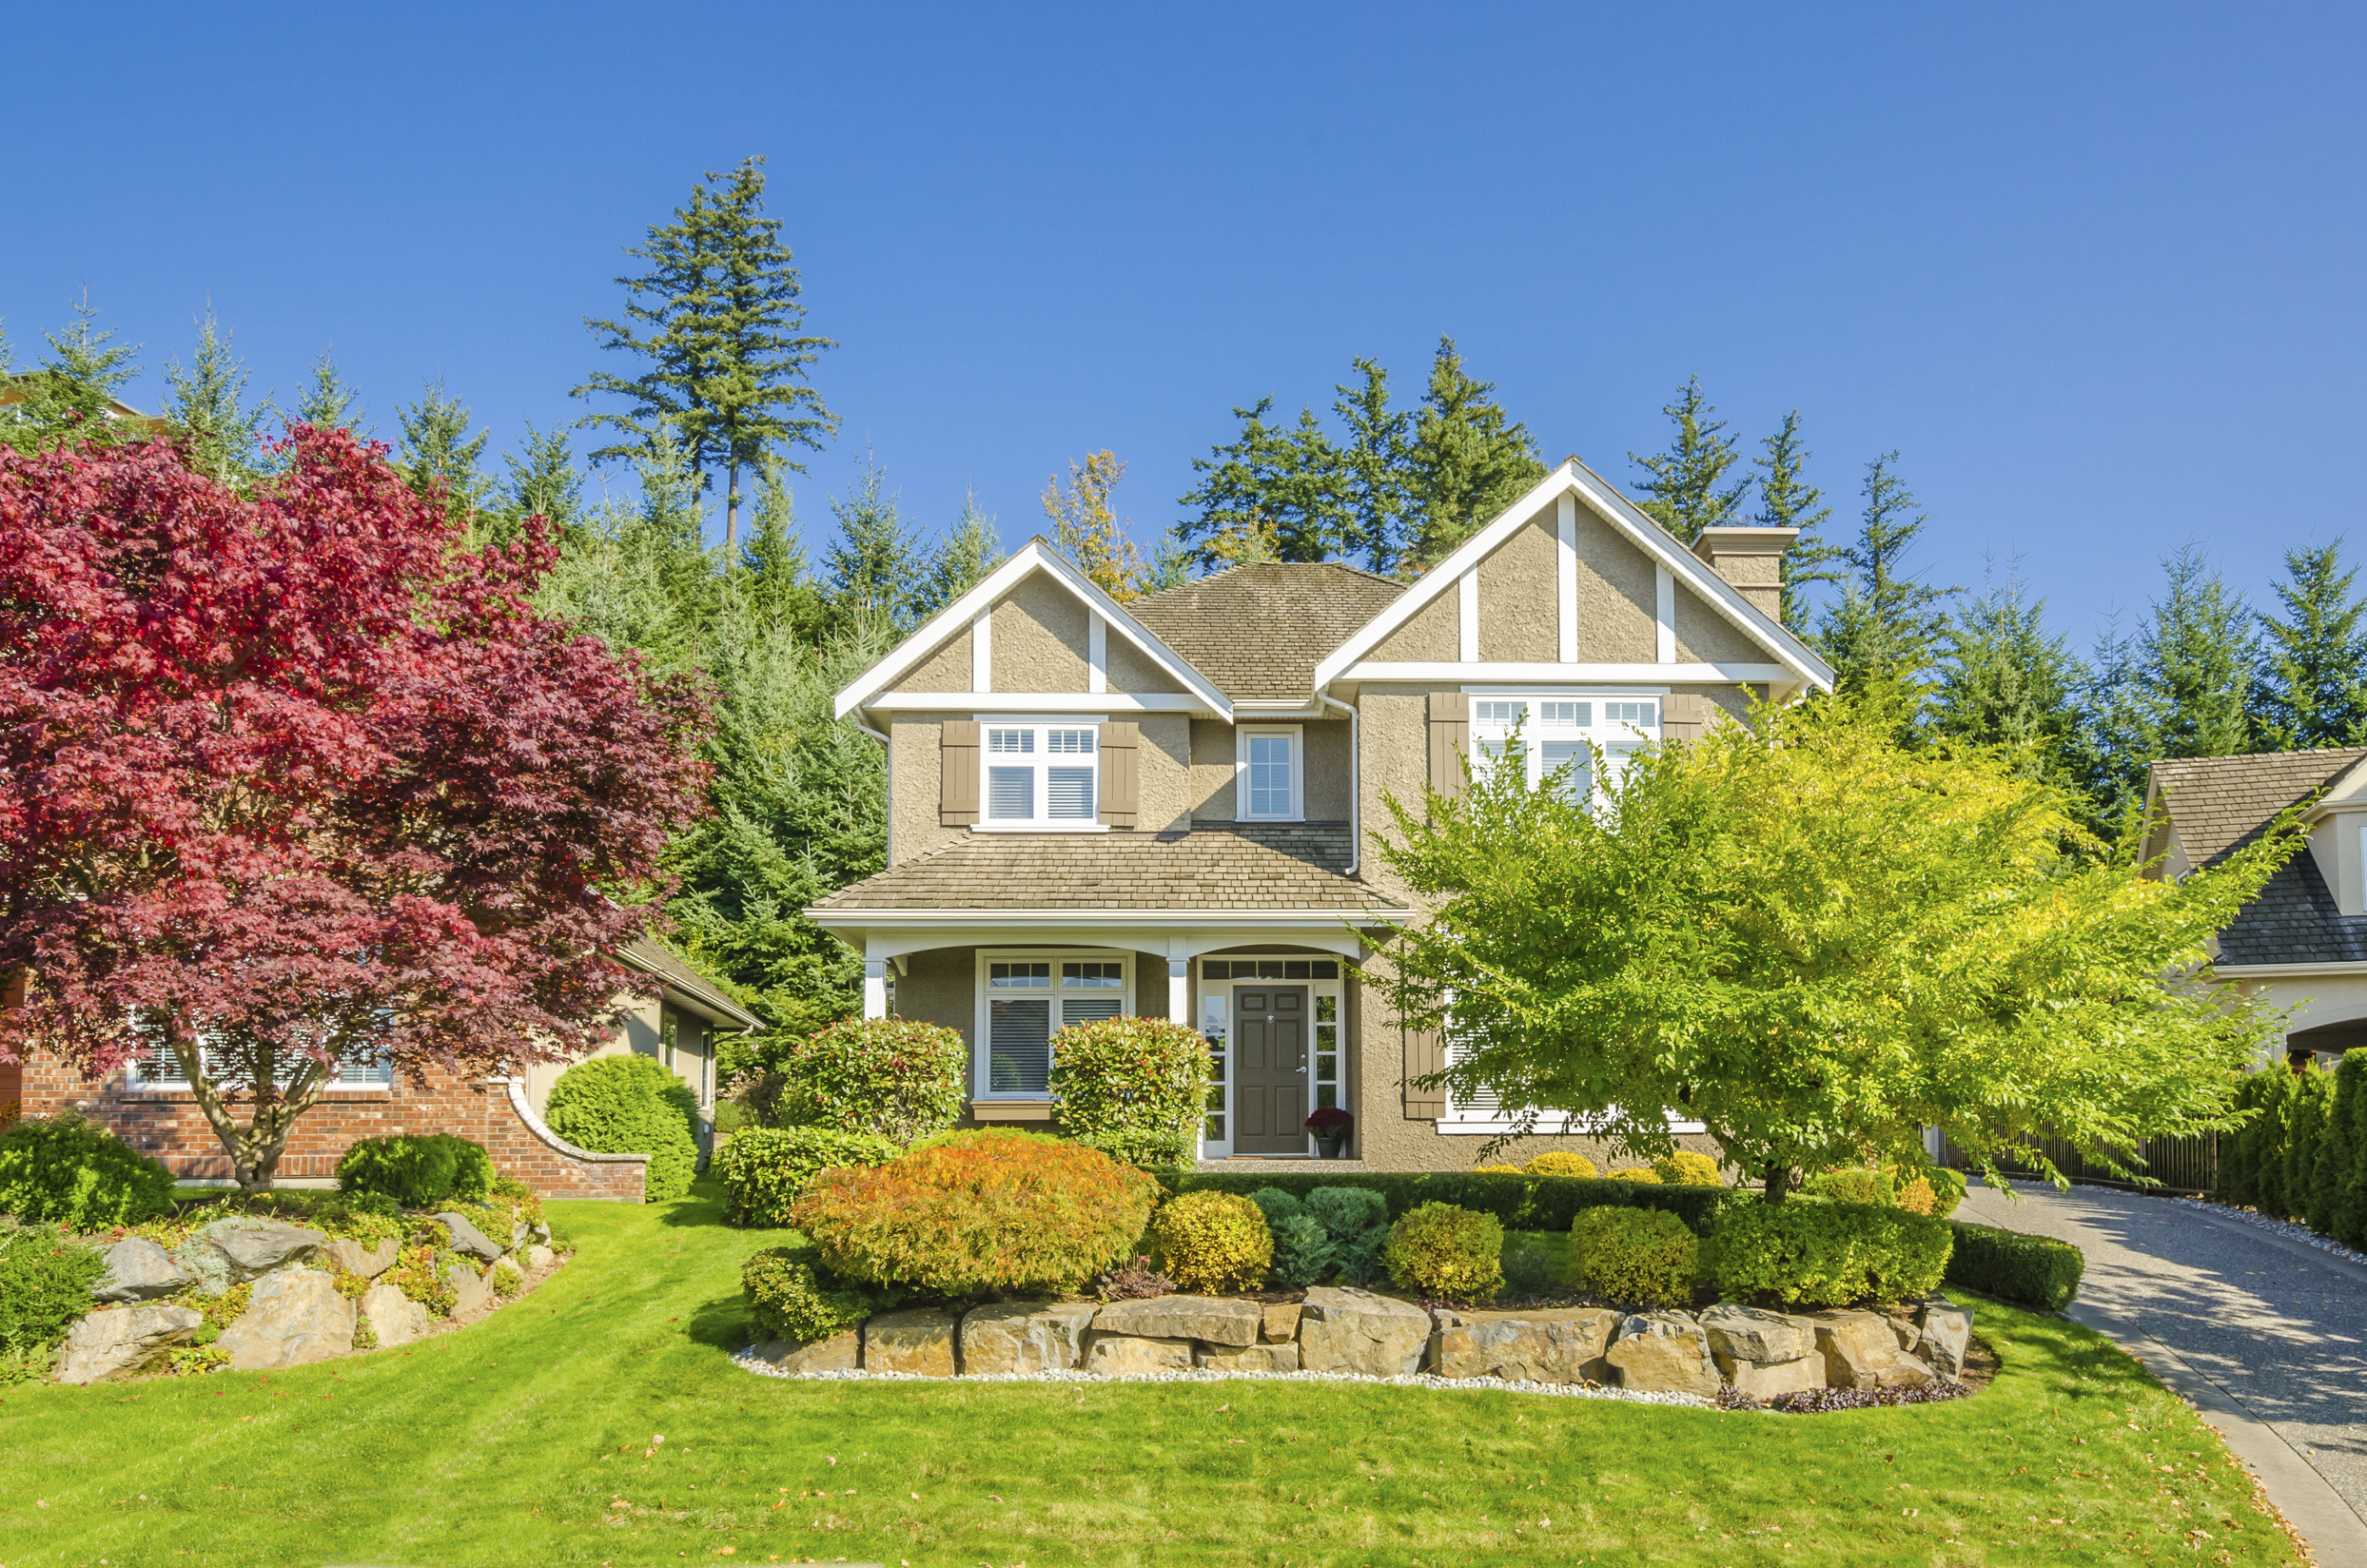 Five Questions To Ask Before Buying A Home